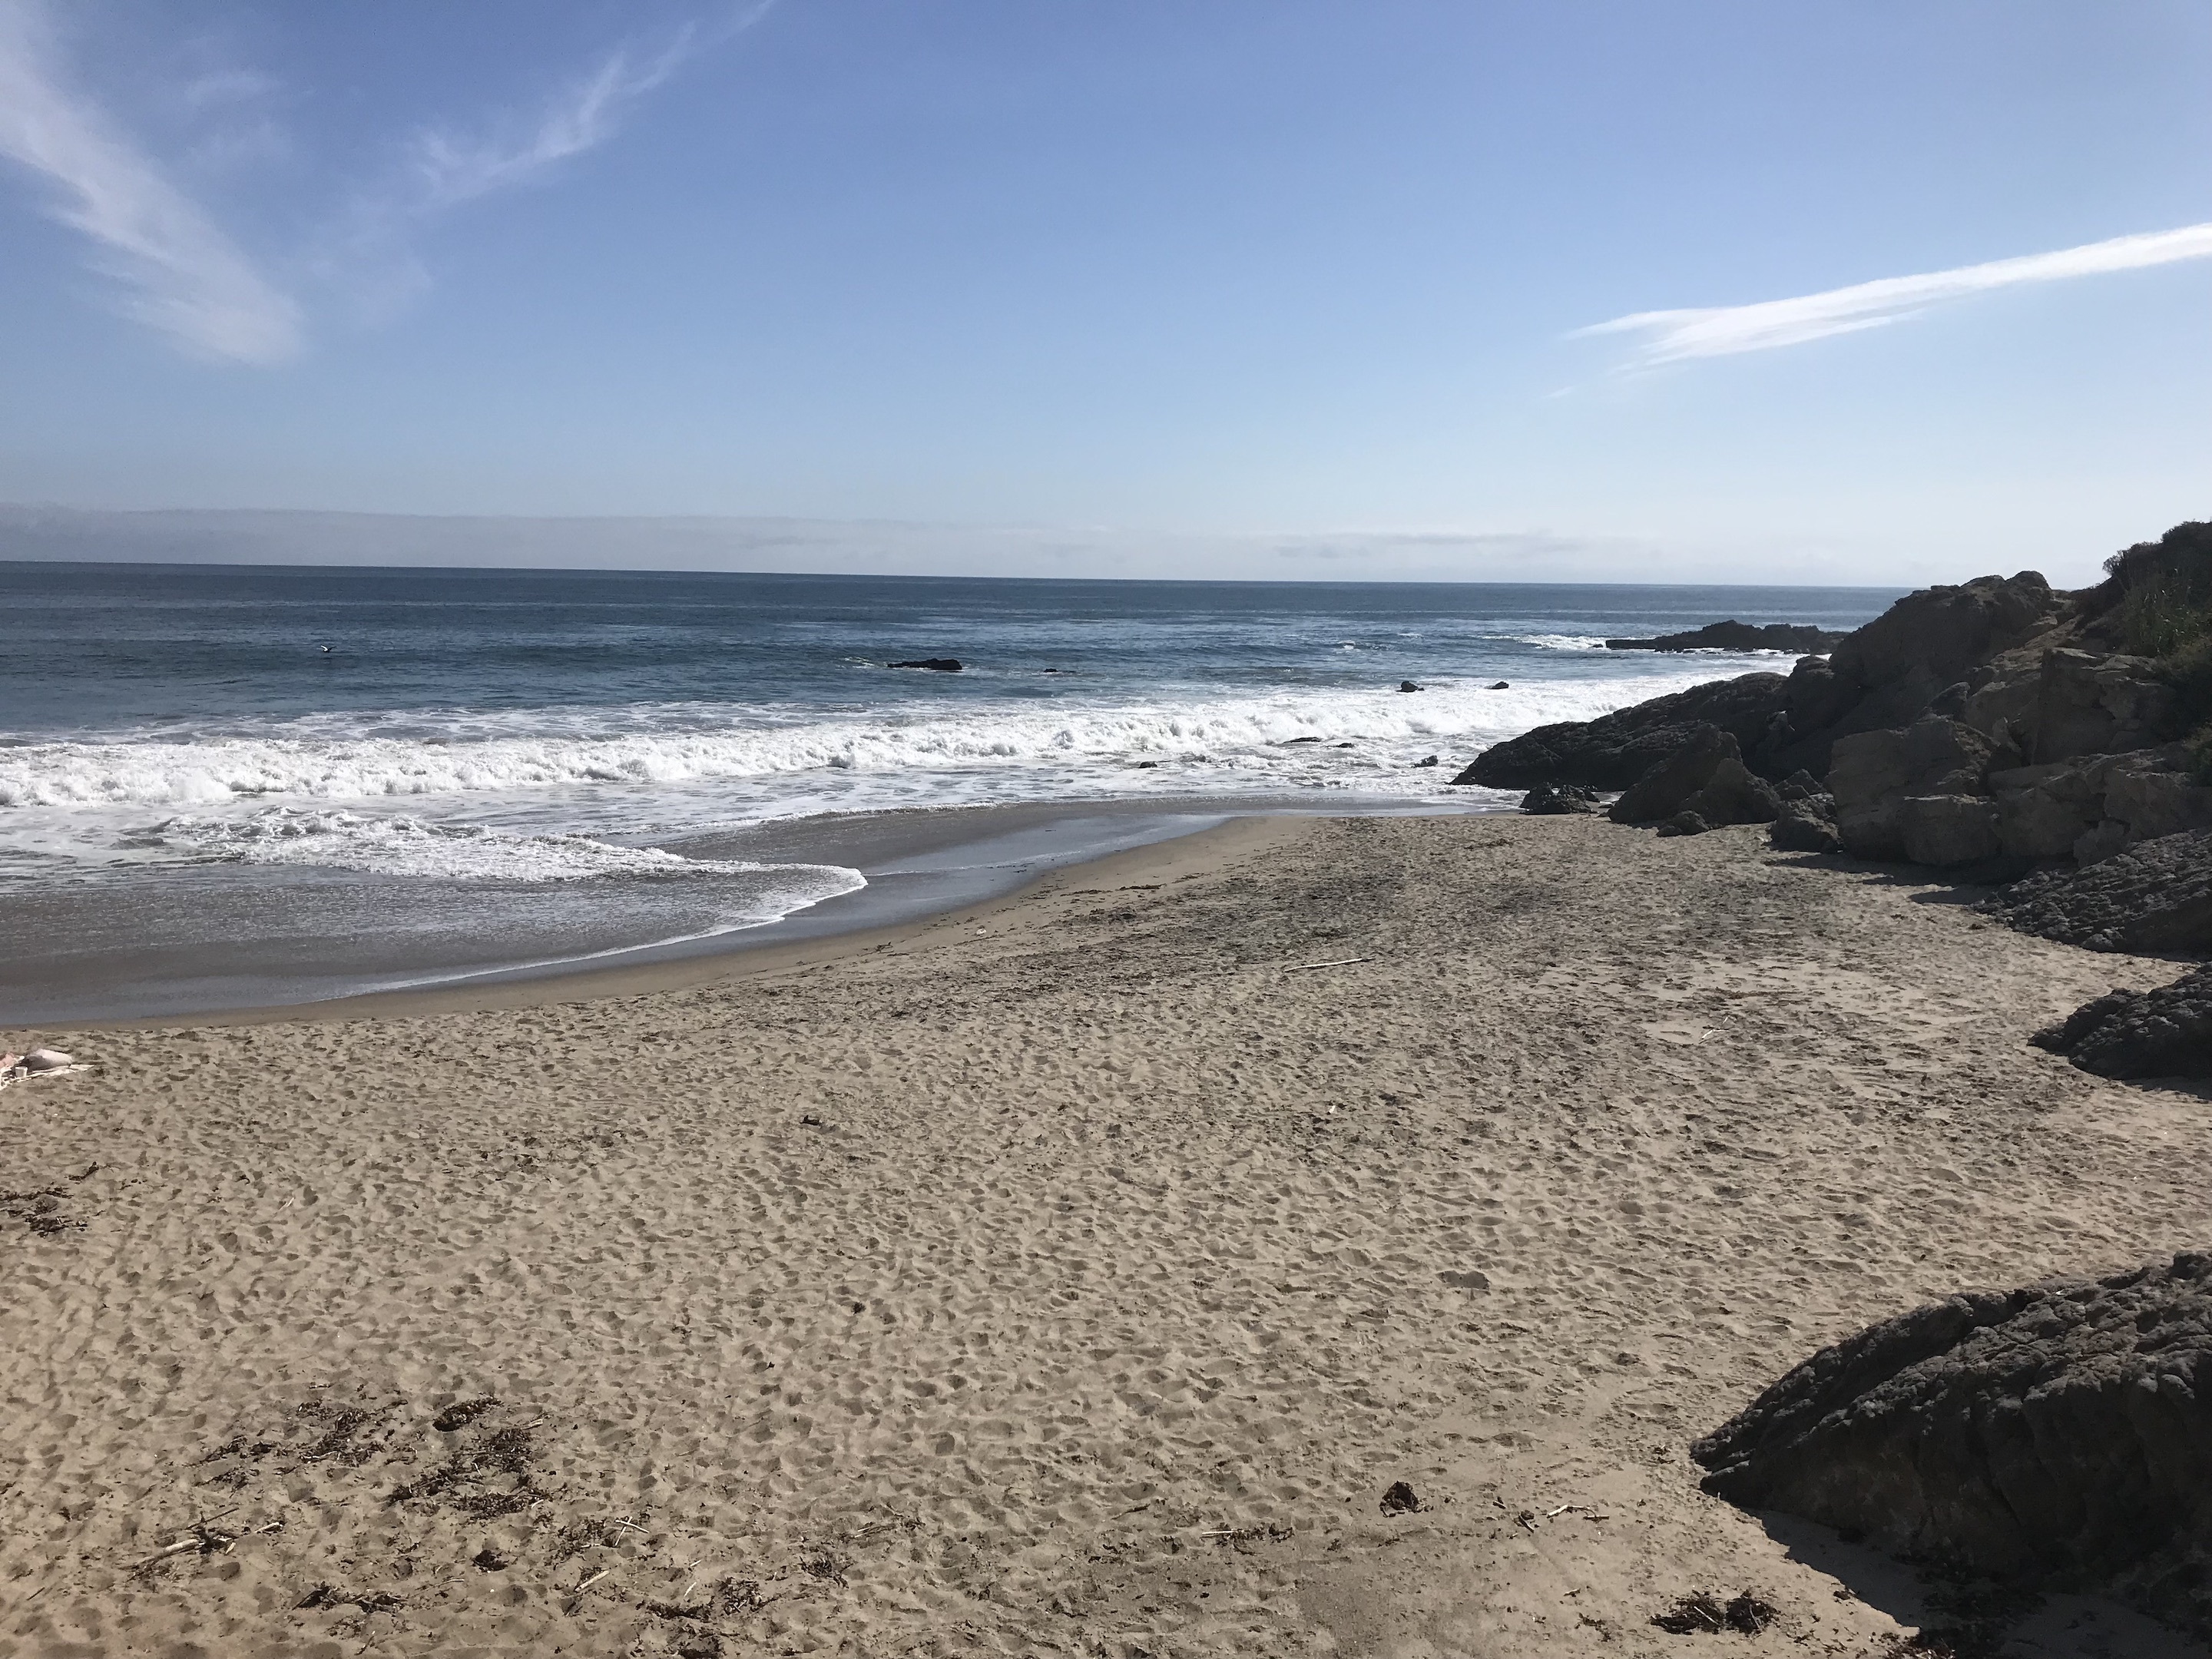 A picture of the cove at Leo Carrillo state park. A sandy beach cove is bordered on the right by rocks, while on the left there is a calm shoreline.